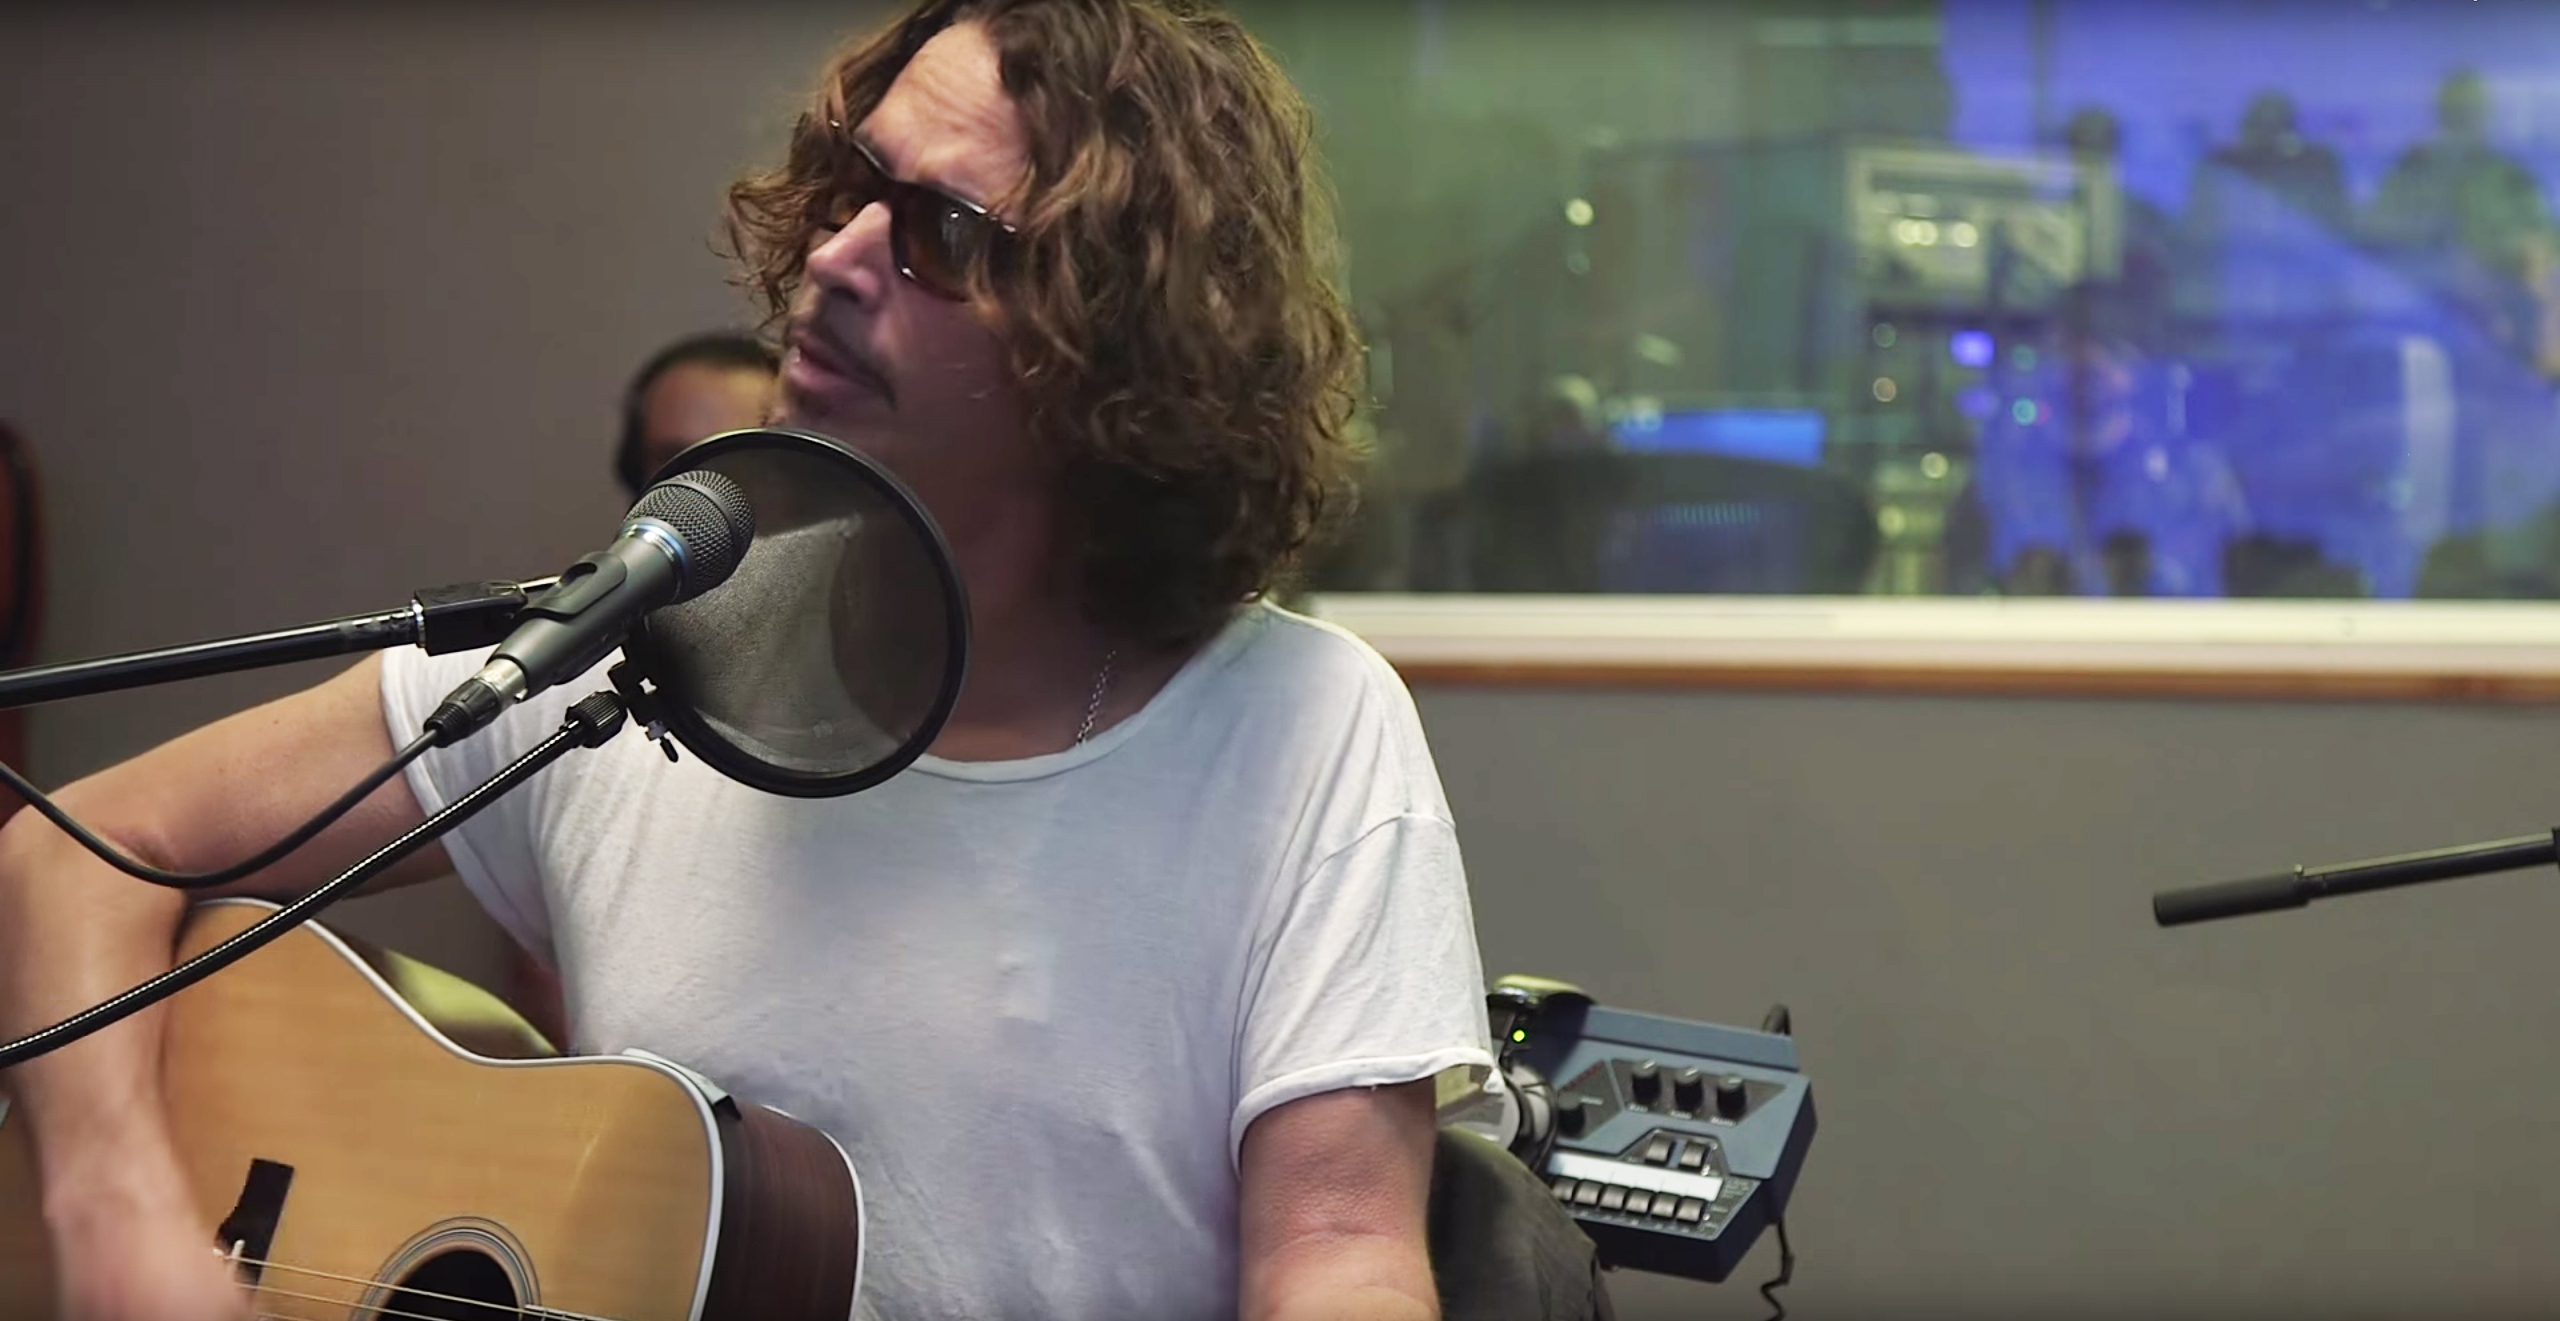 Chris Cornell Nothing compares to you - YouTube